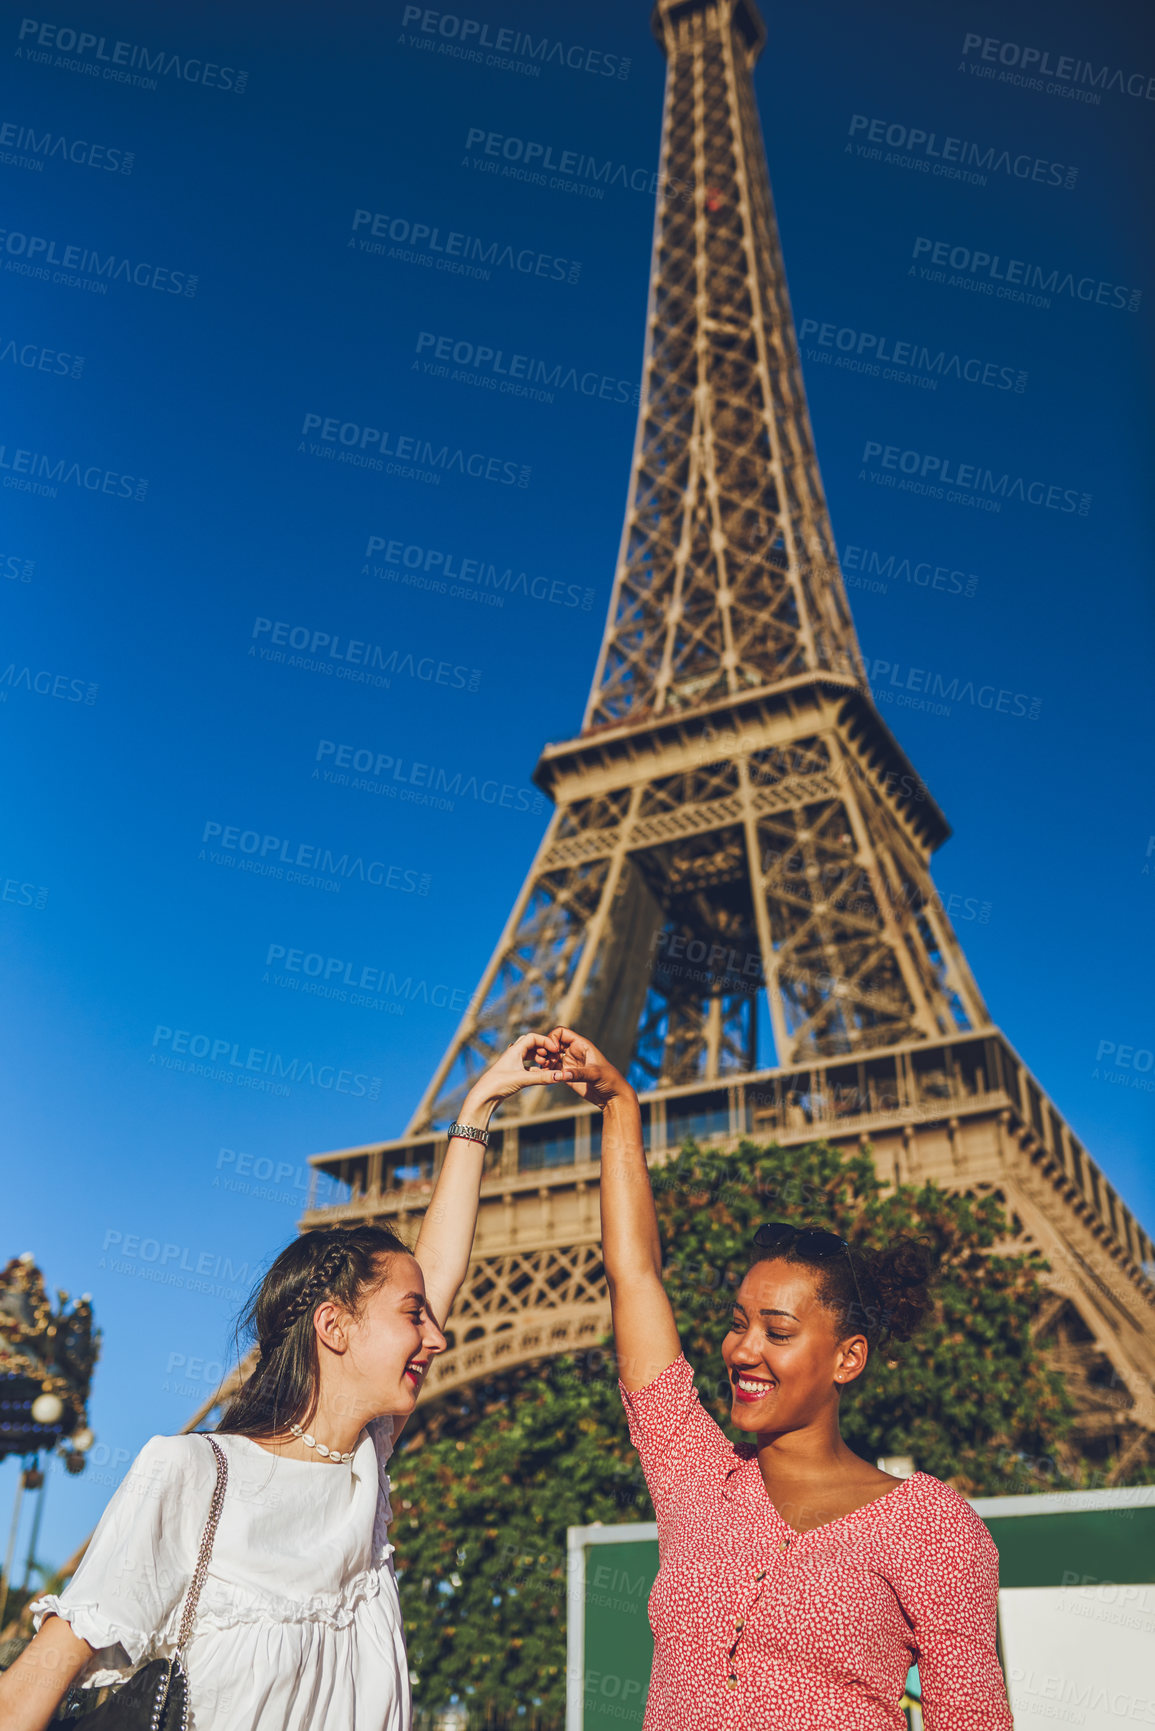 Buy stock photo Shot of two happy young women making a heart shaped gesture with their hands at a carnival